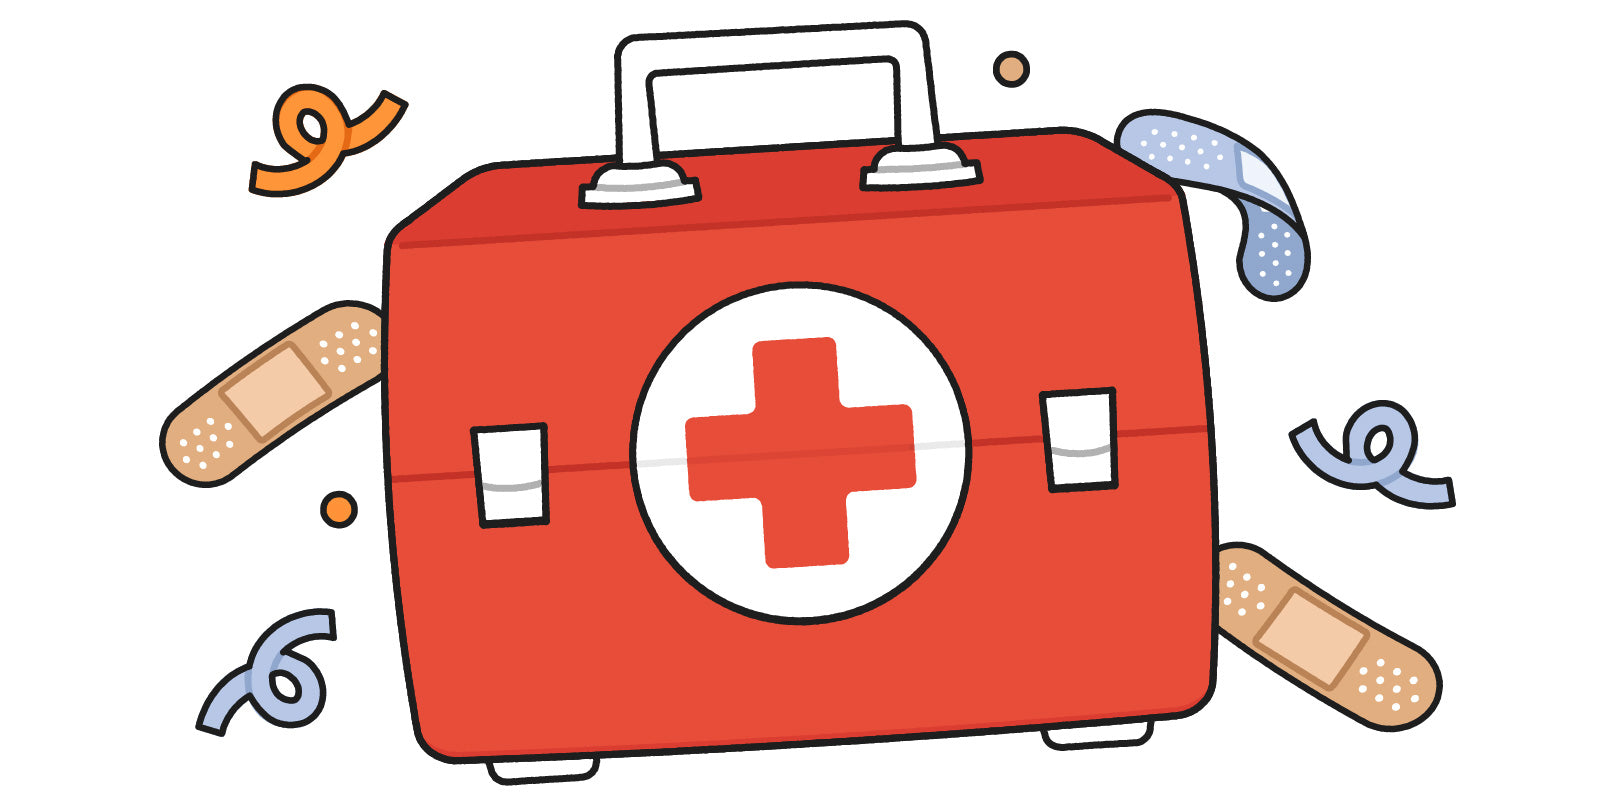 Illustrated first aid kit with curlicues and bandaid drawings